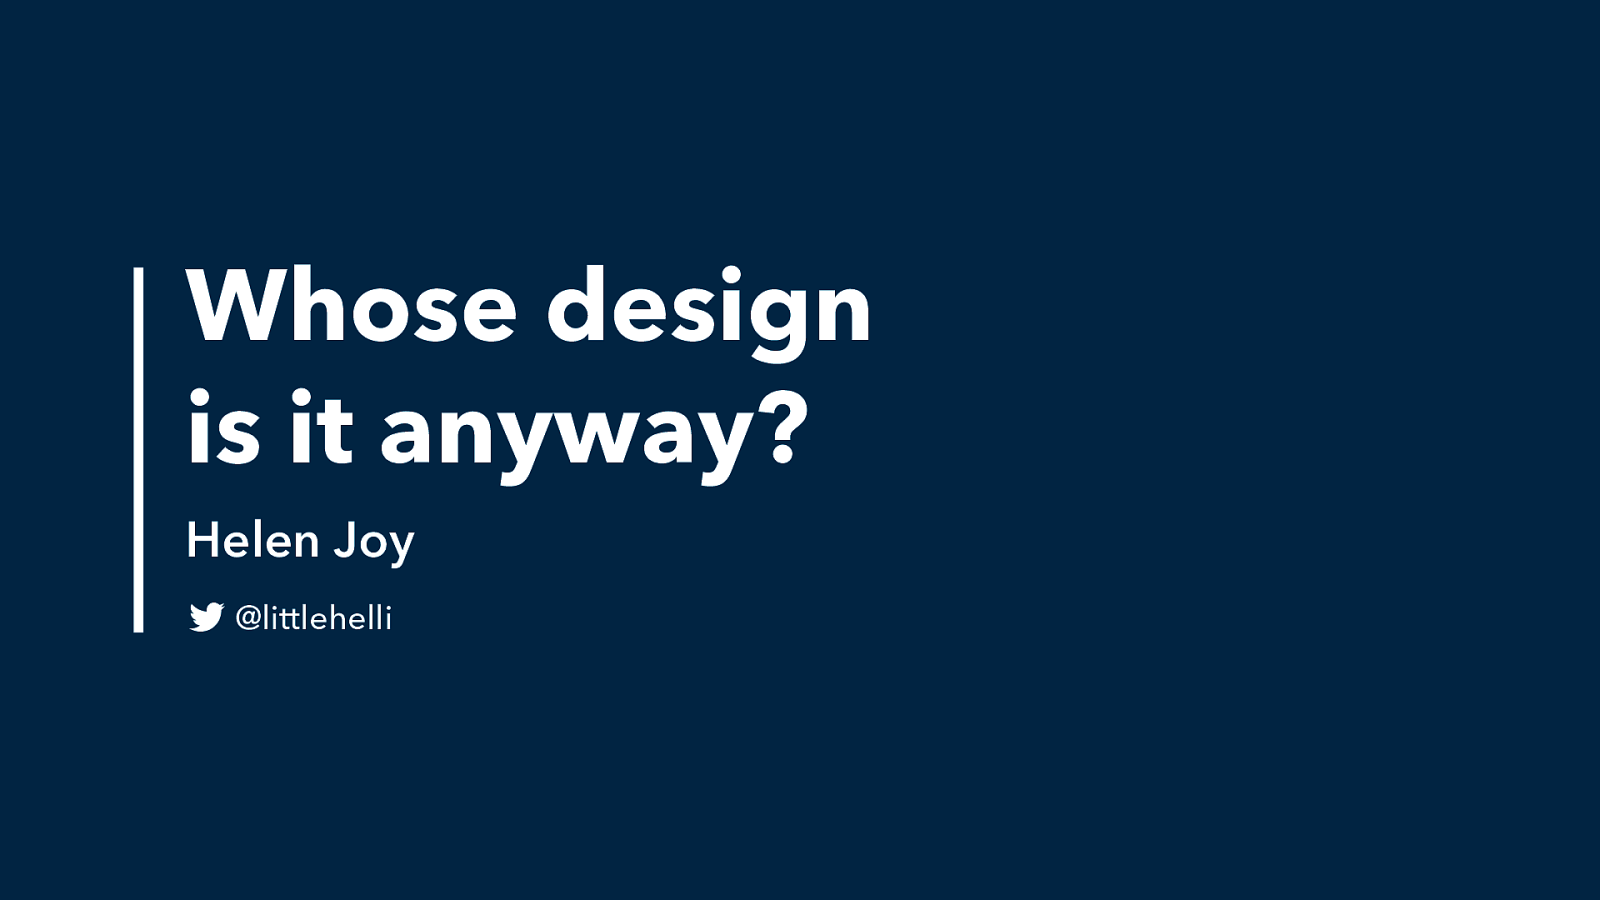 Whose Design is it Anyway? by Helen Joy